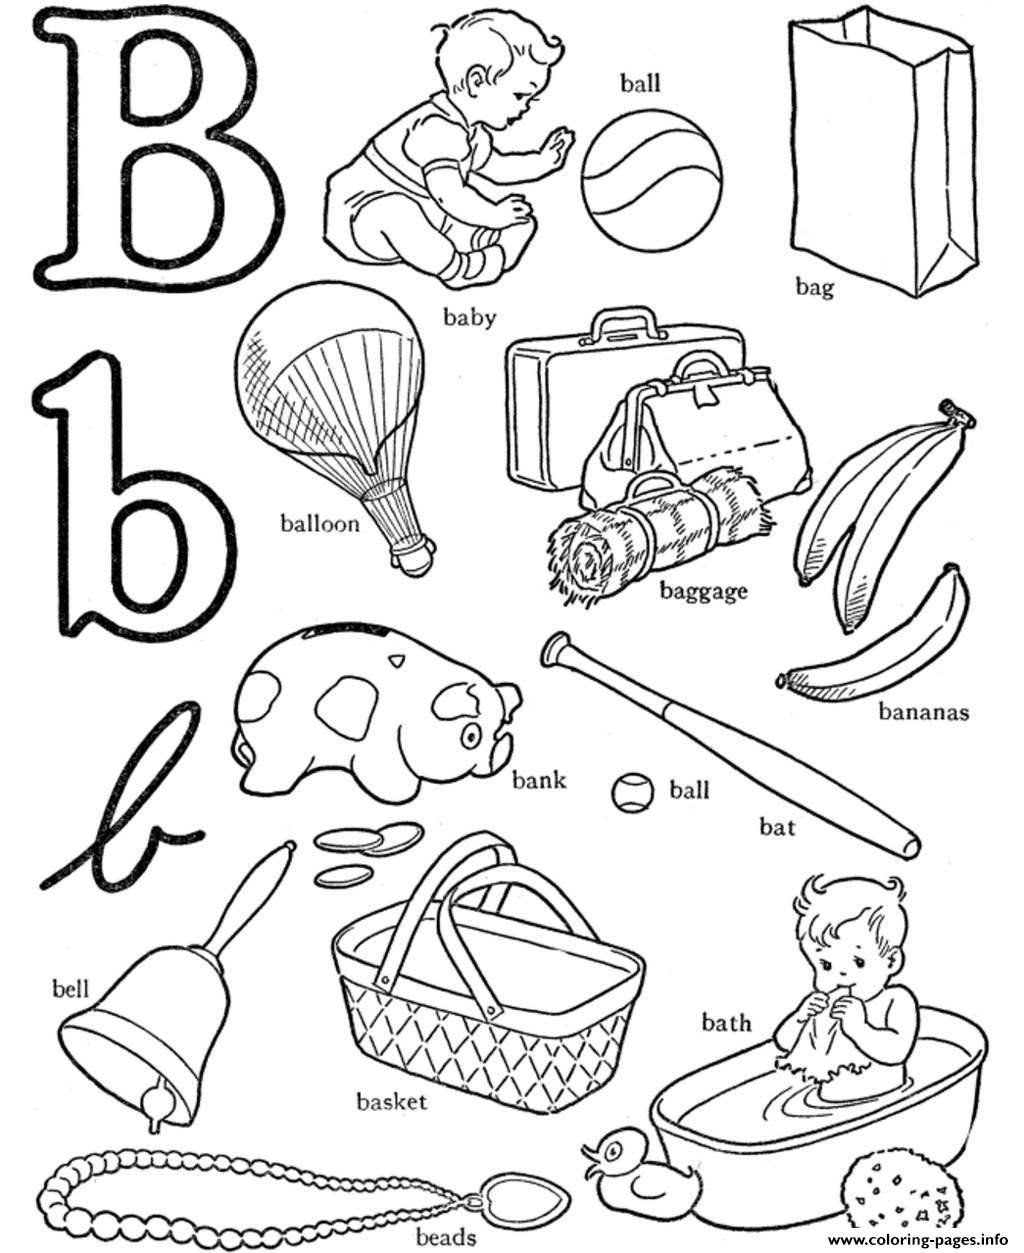 B Is For Ball Coloring Page B For Words Alphabet S3b0c